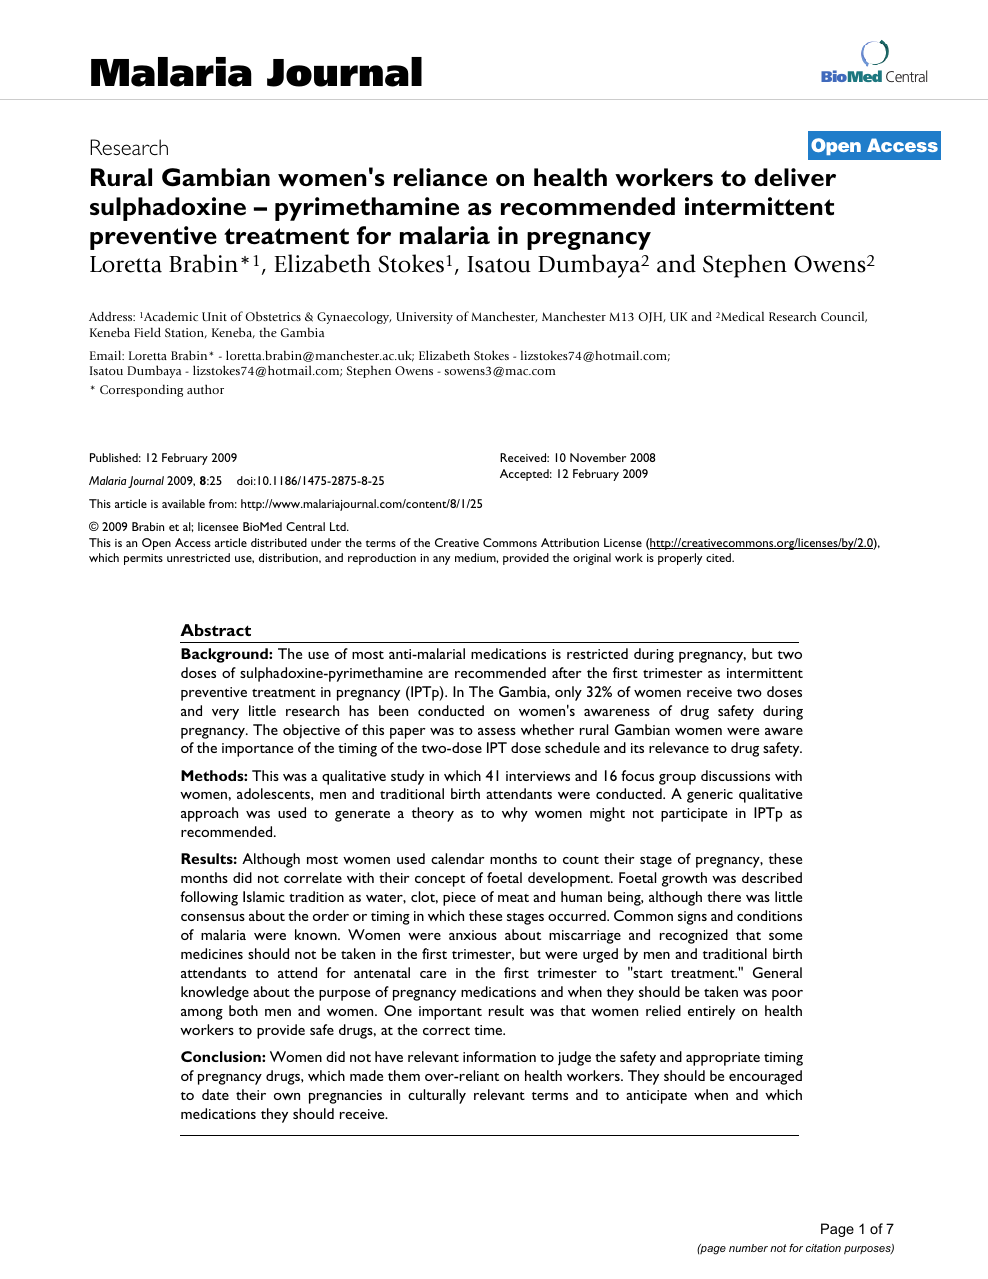 Rural Gambian women's reliance on health workers to deliver